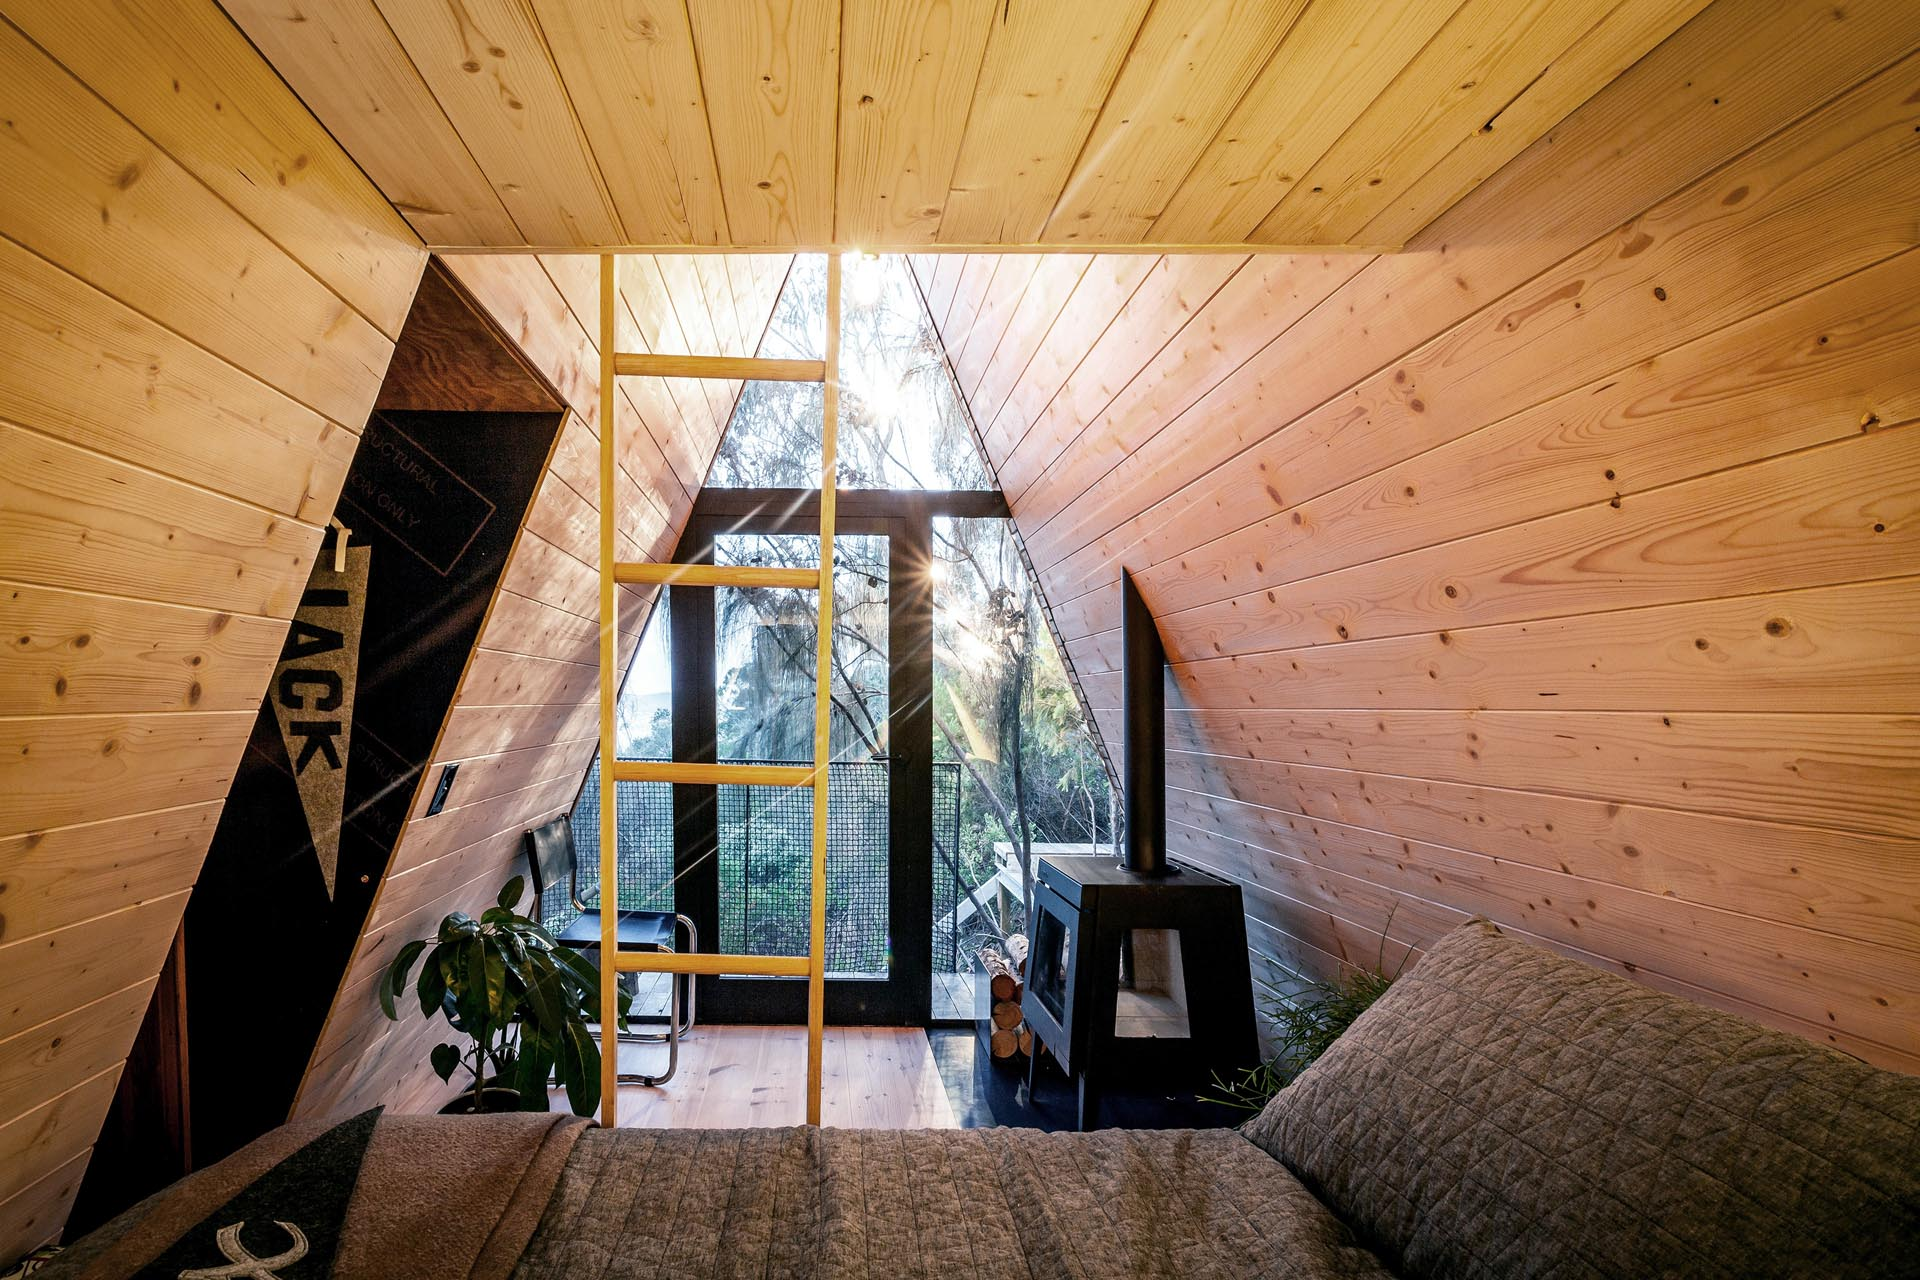 A small and modern wood-lined A-framed cabin with a sleeping area and lofted space.